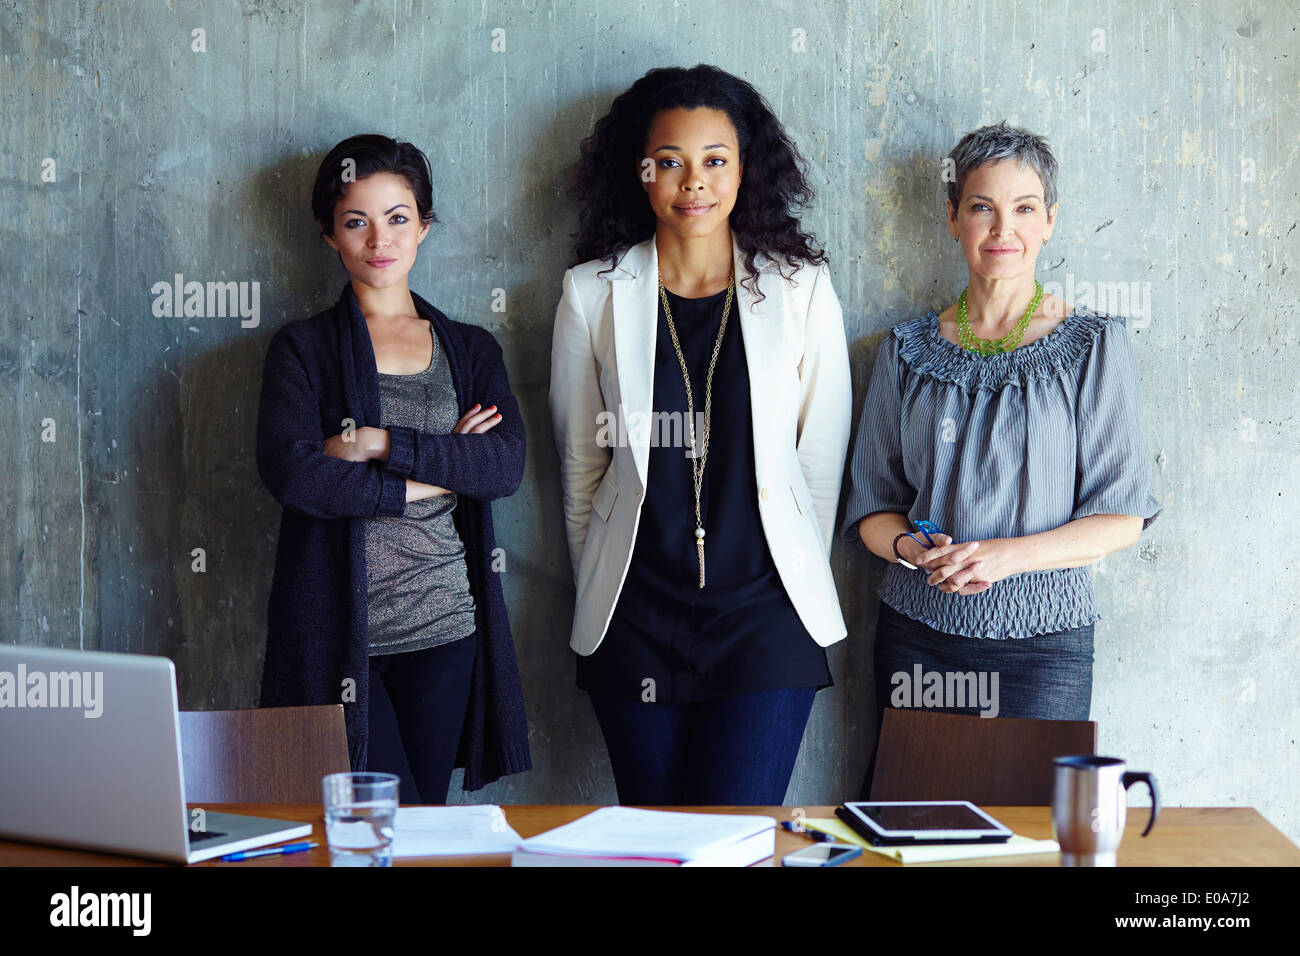 Portrait of three businesswoman in office - Stock Image